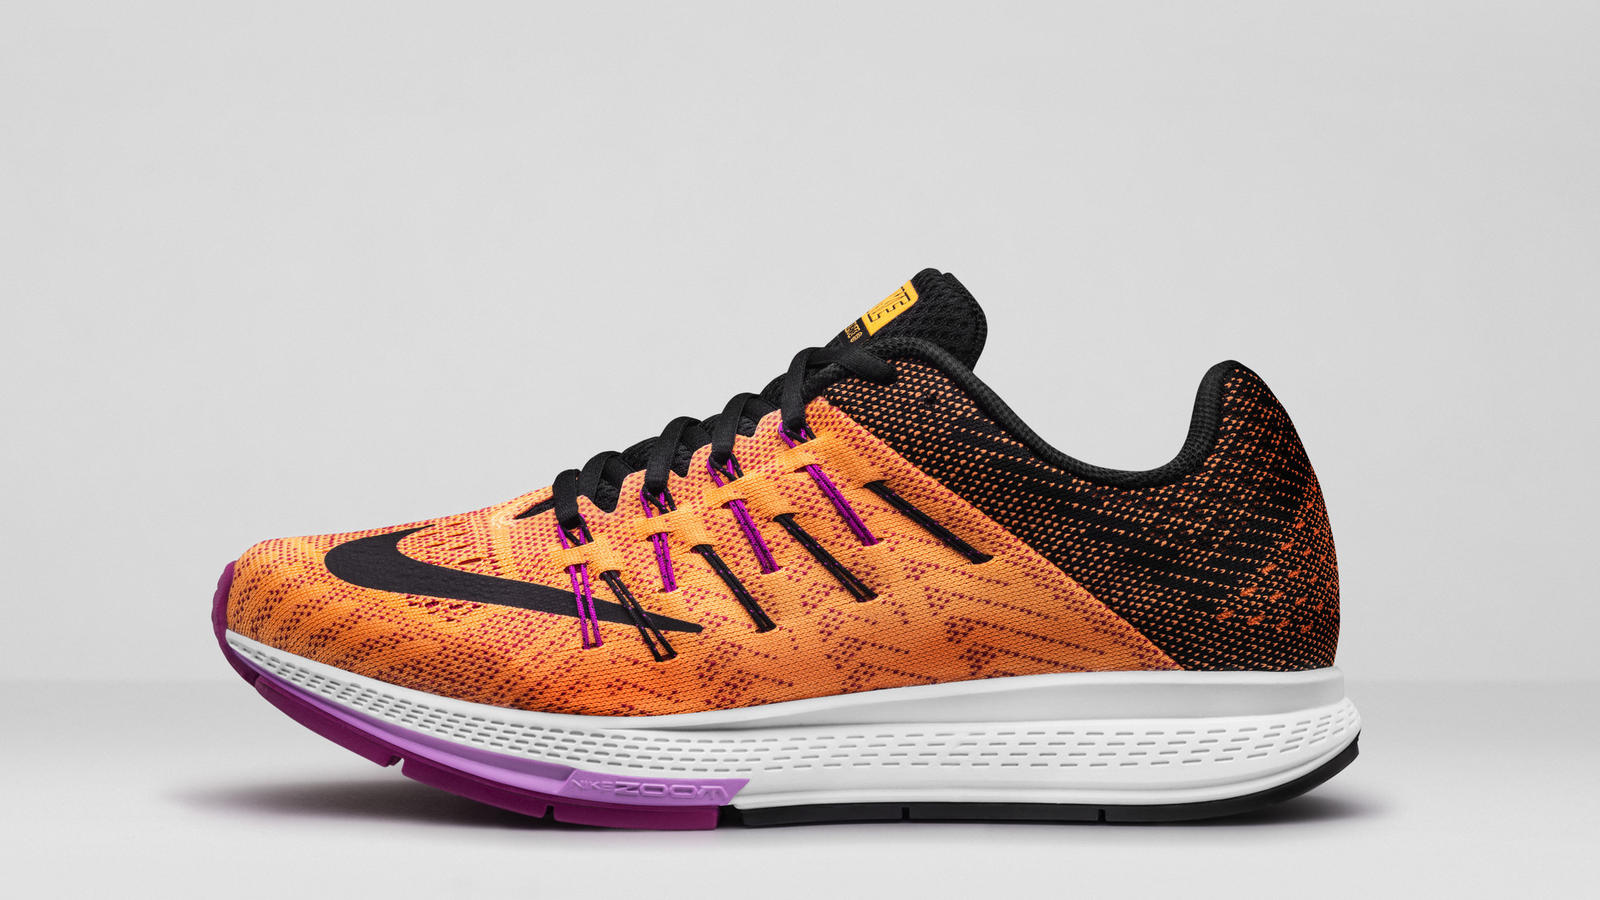 NIKE WMNS AIR ZOOM ELITE 8 YELLOW - NIKE WOMEN'S RUNNING SHOES